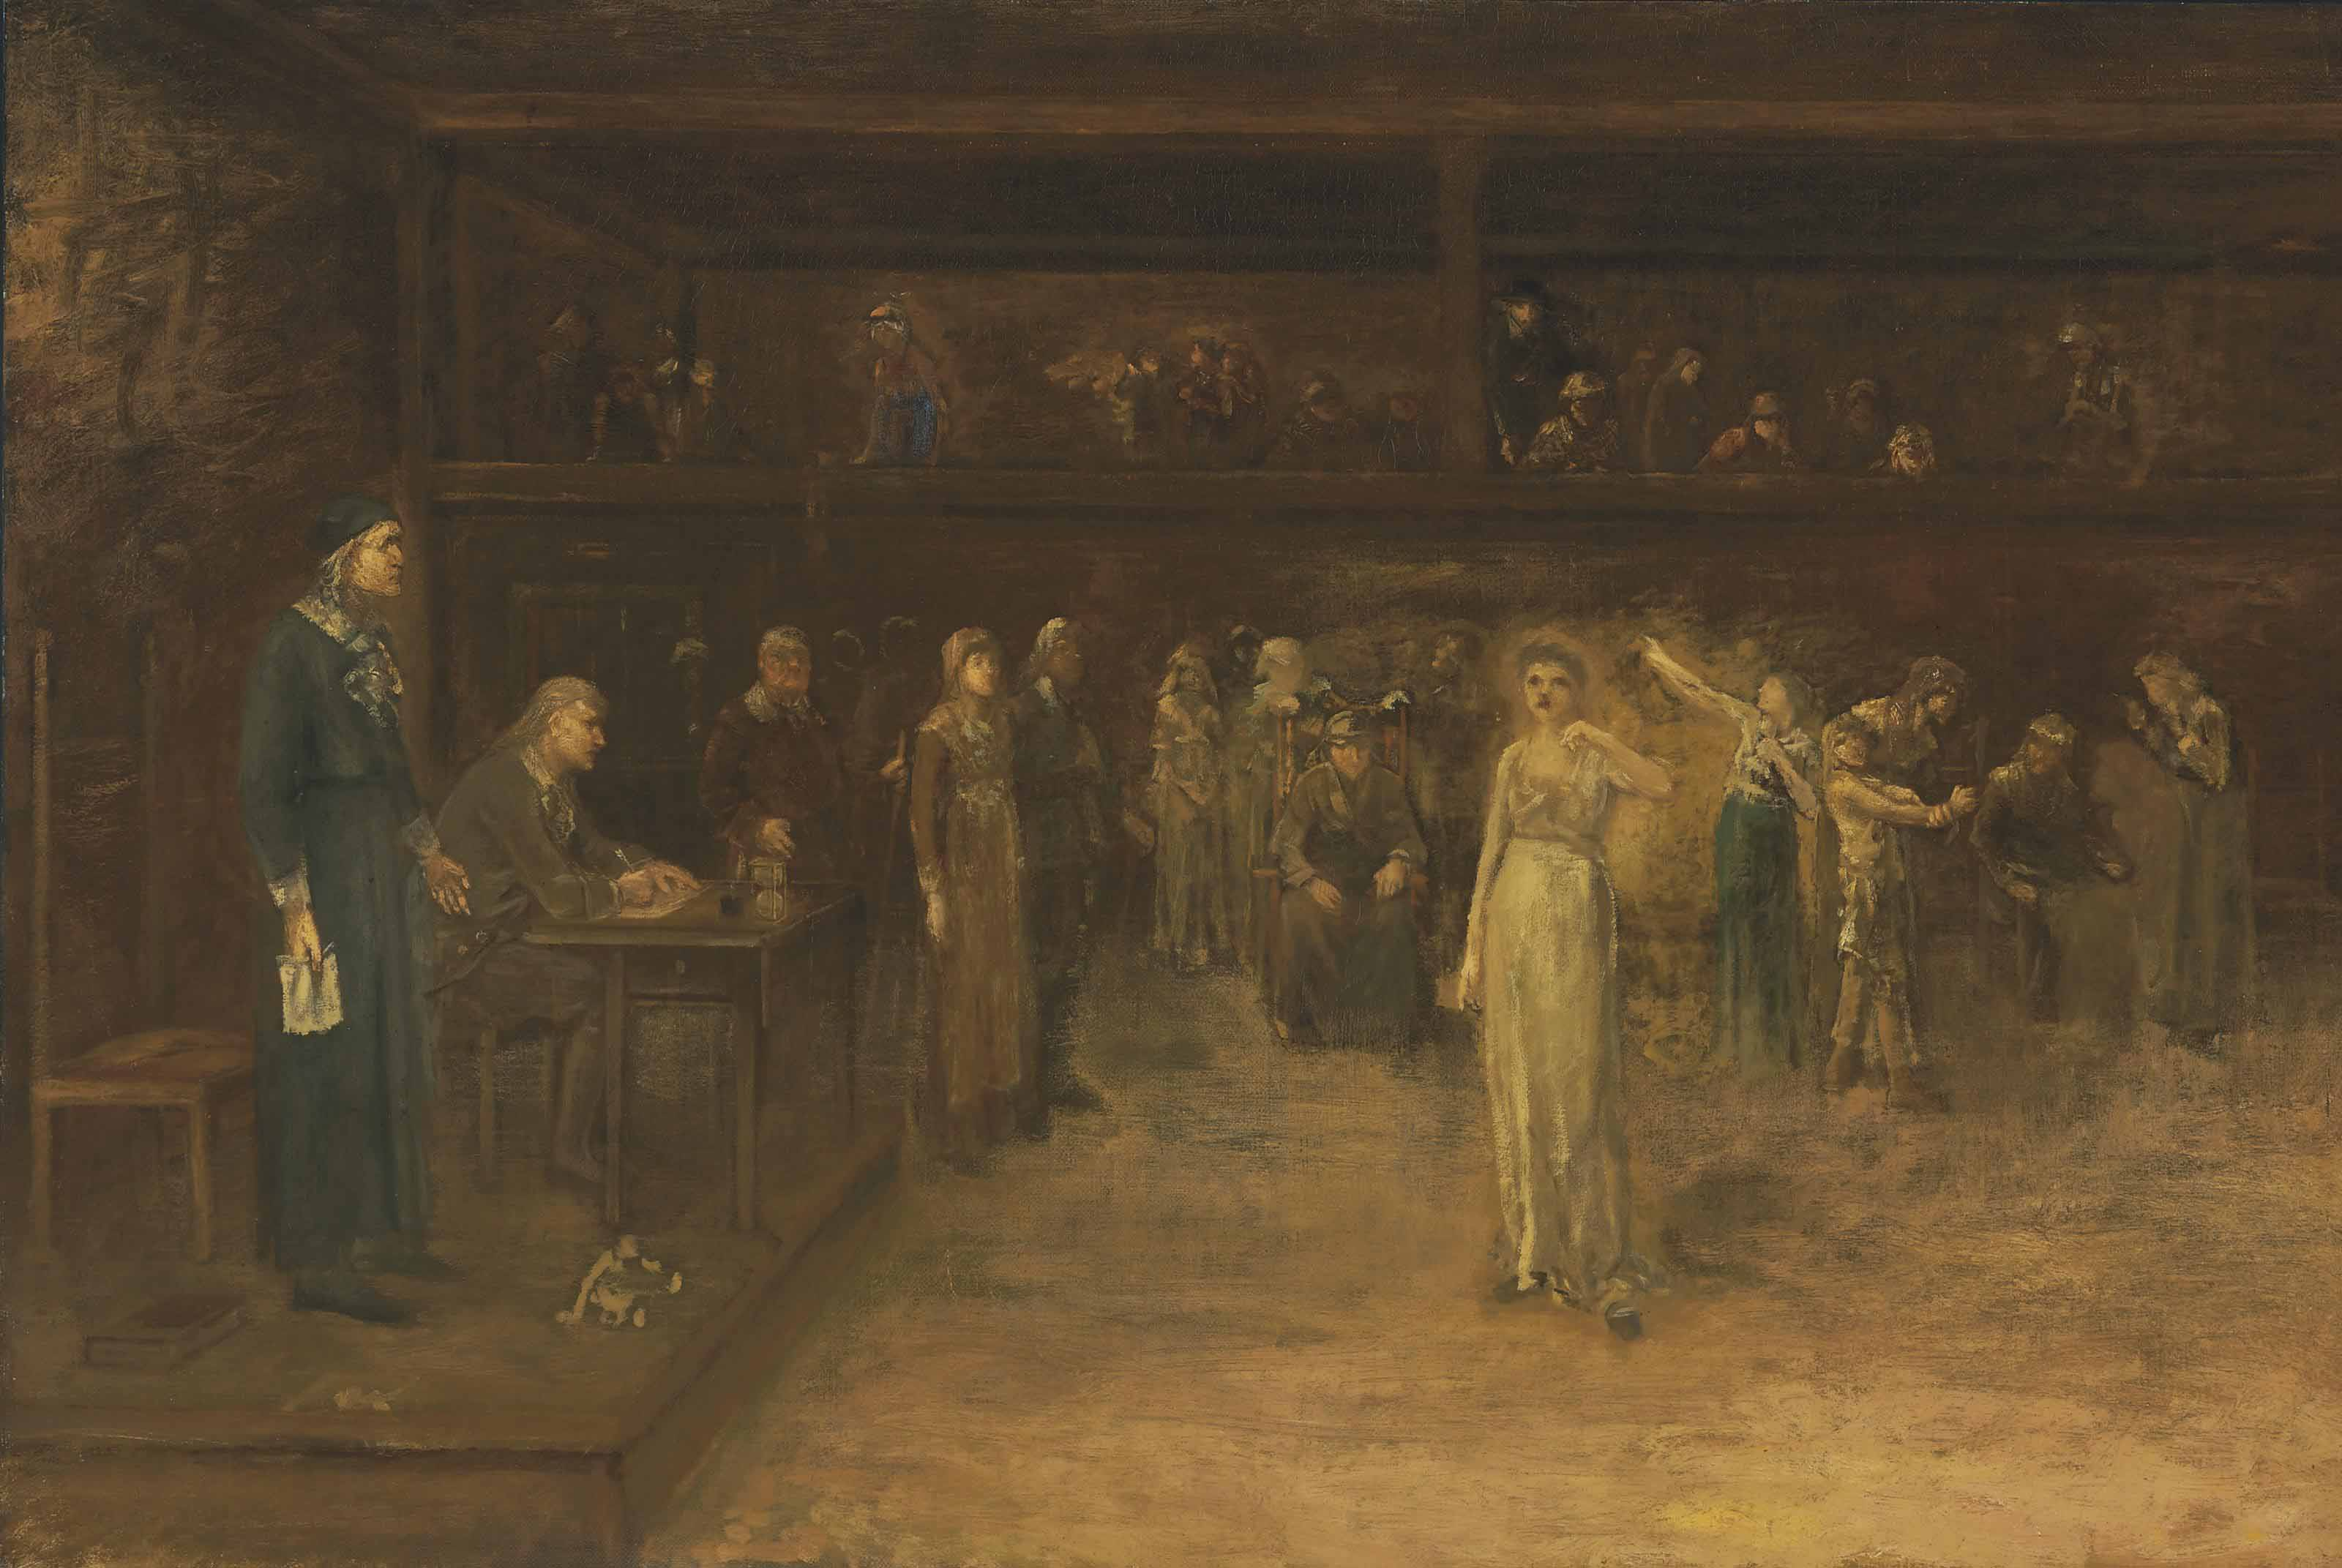 An Examination of Witnesses in a Trial for Witchcraft